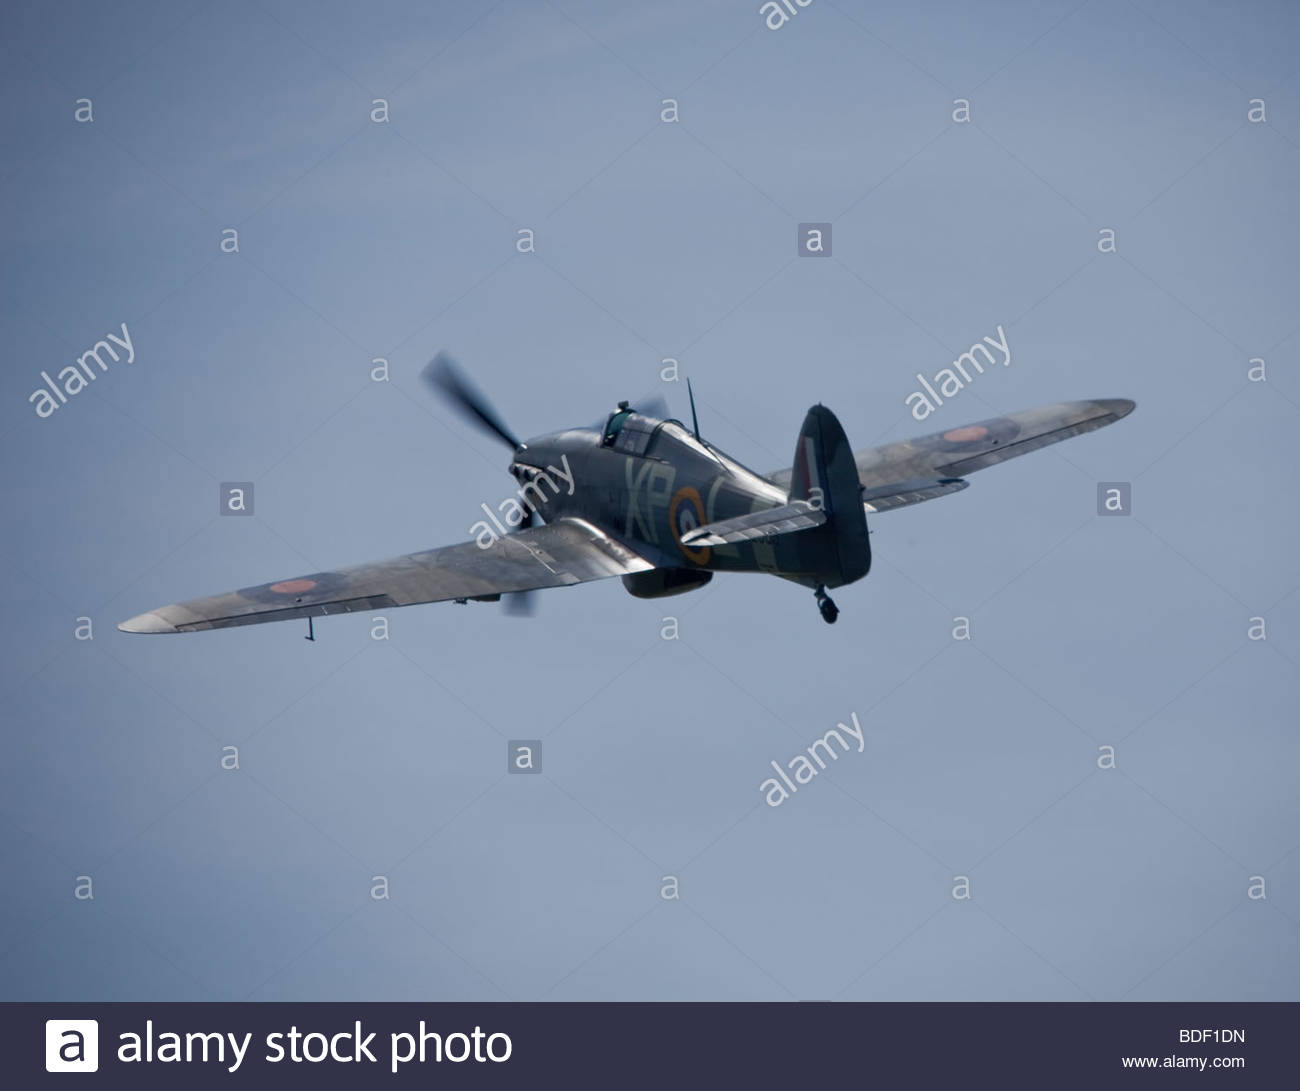 Hawker Hurricane fighter aircraft, - Stock Image